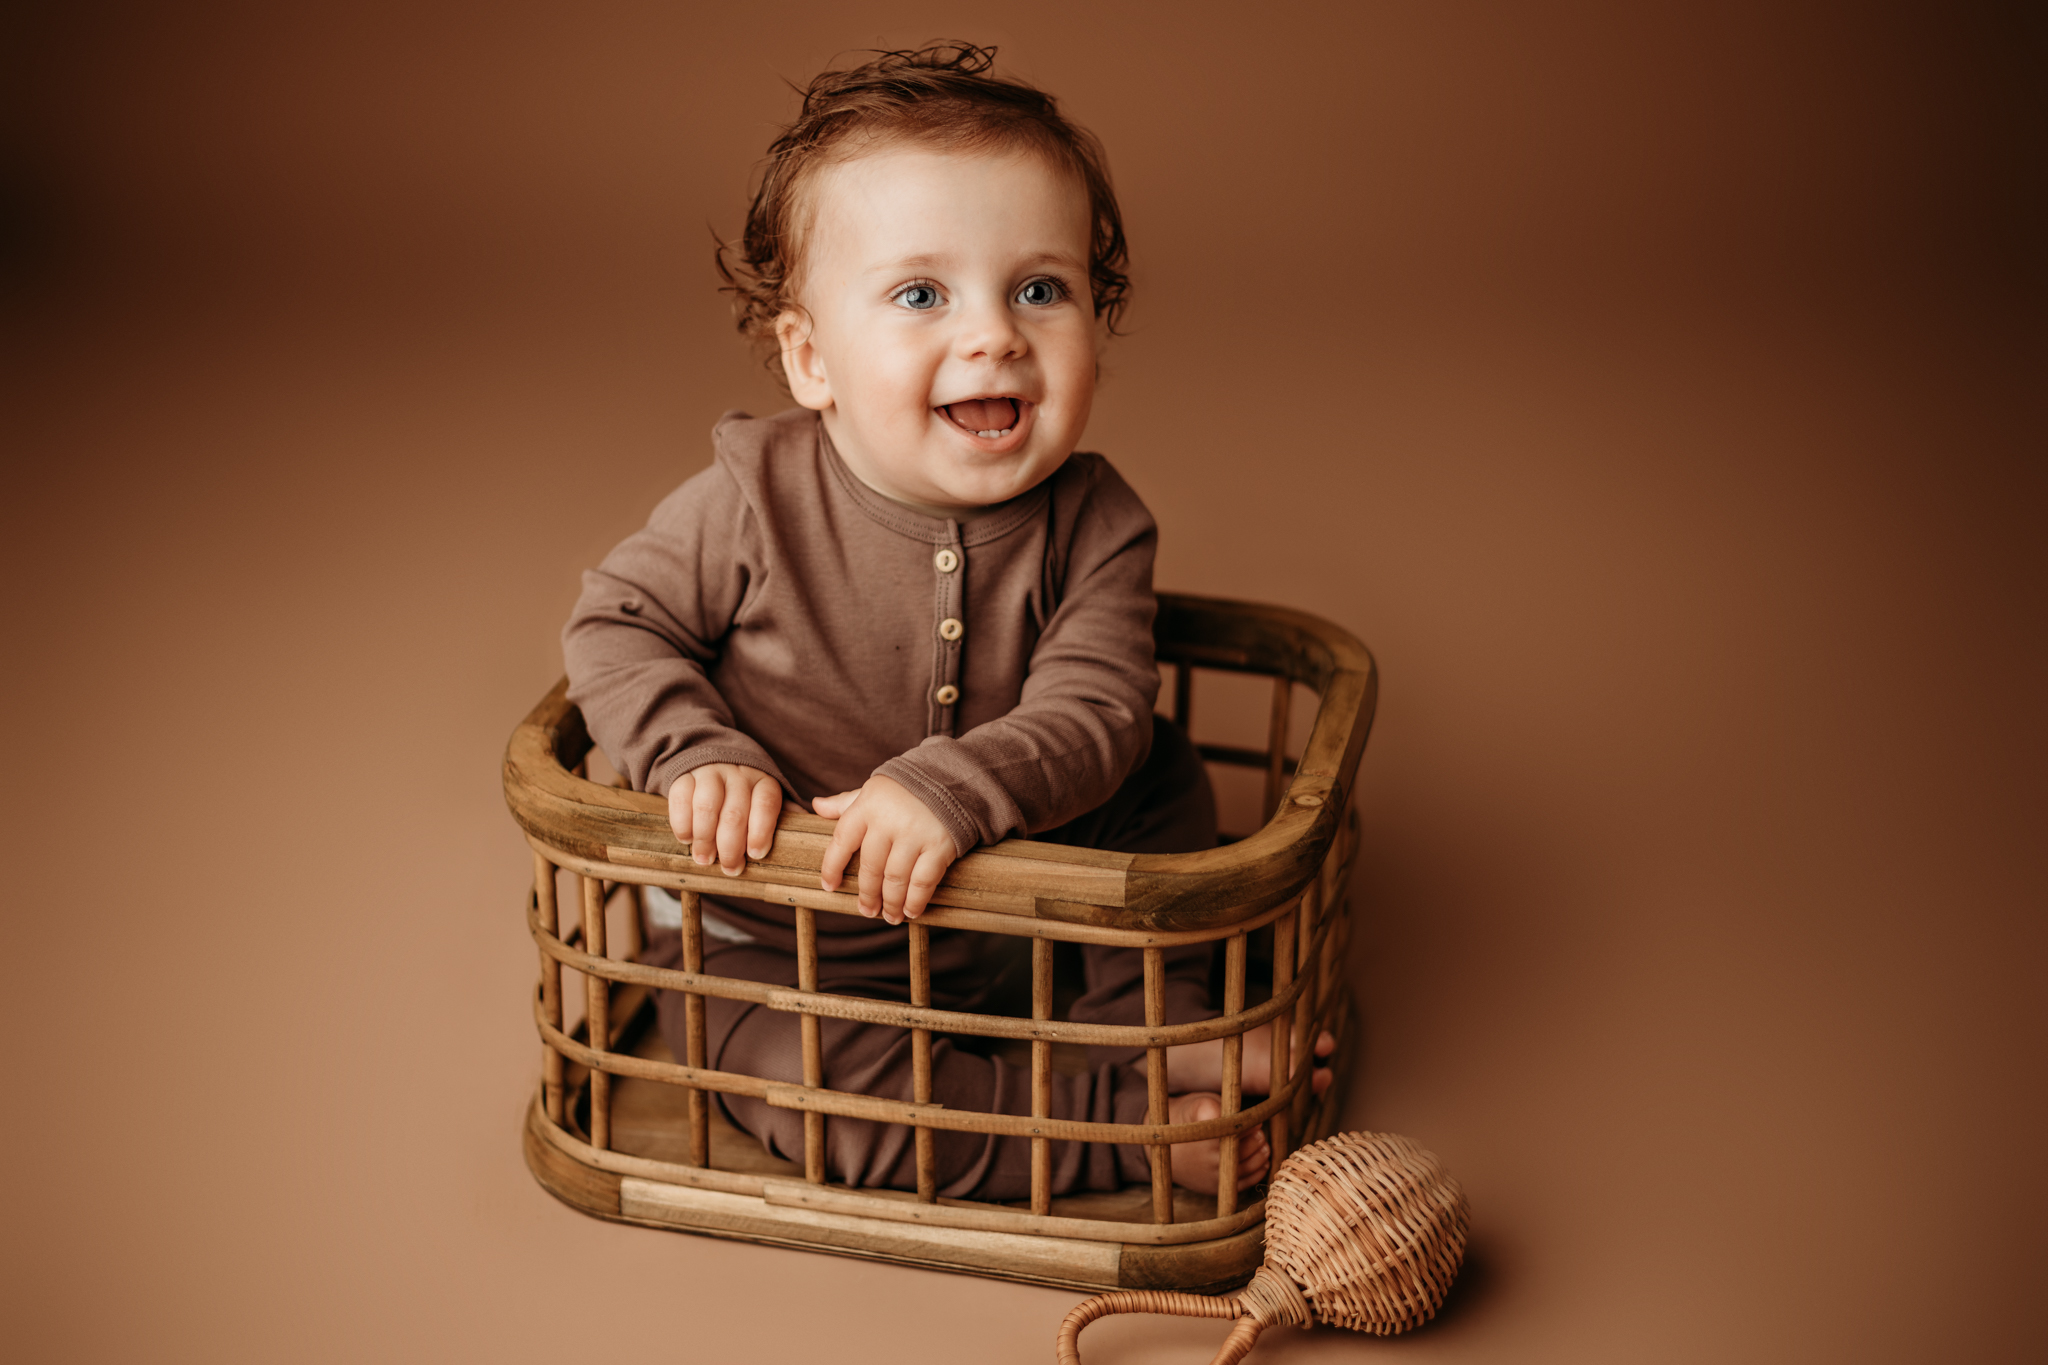 NWA one year little boy in studio on brown backdrop in crate smiling at the camera